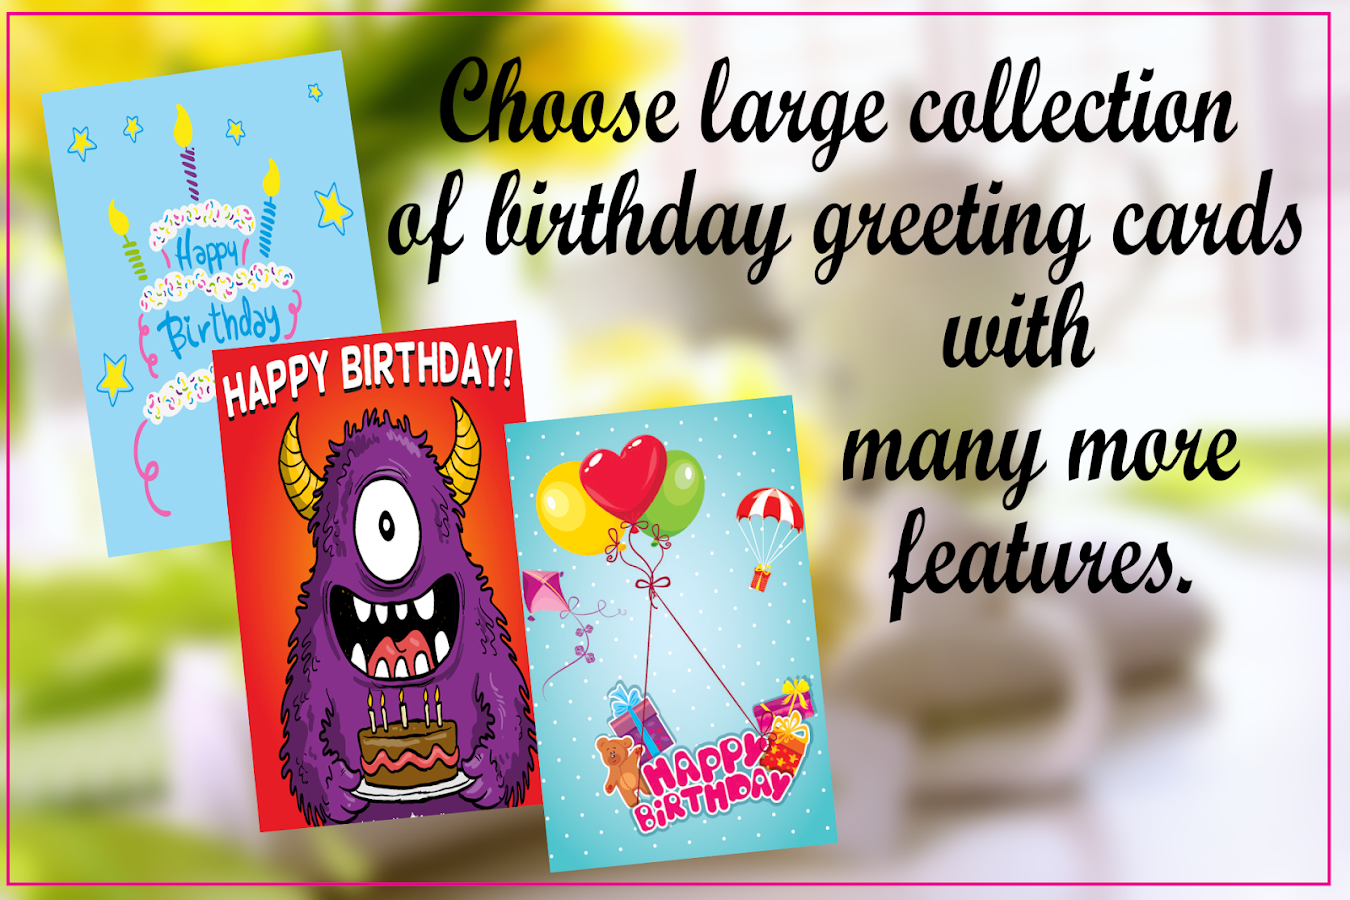 Birthday Greeting Cards Android Apps on Google Play – Birthday Card Collection